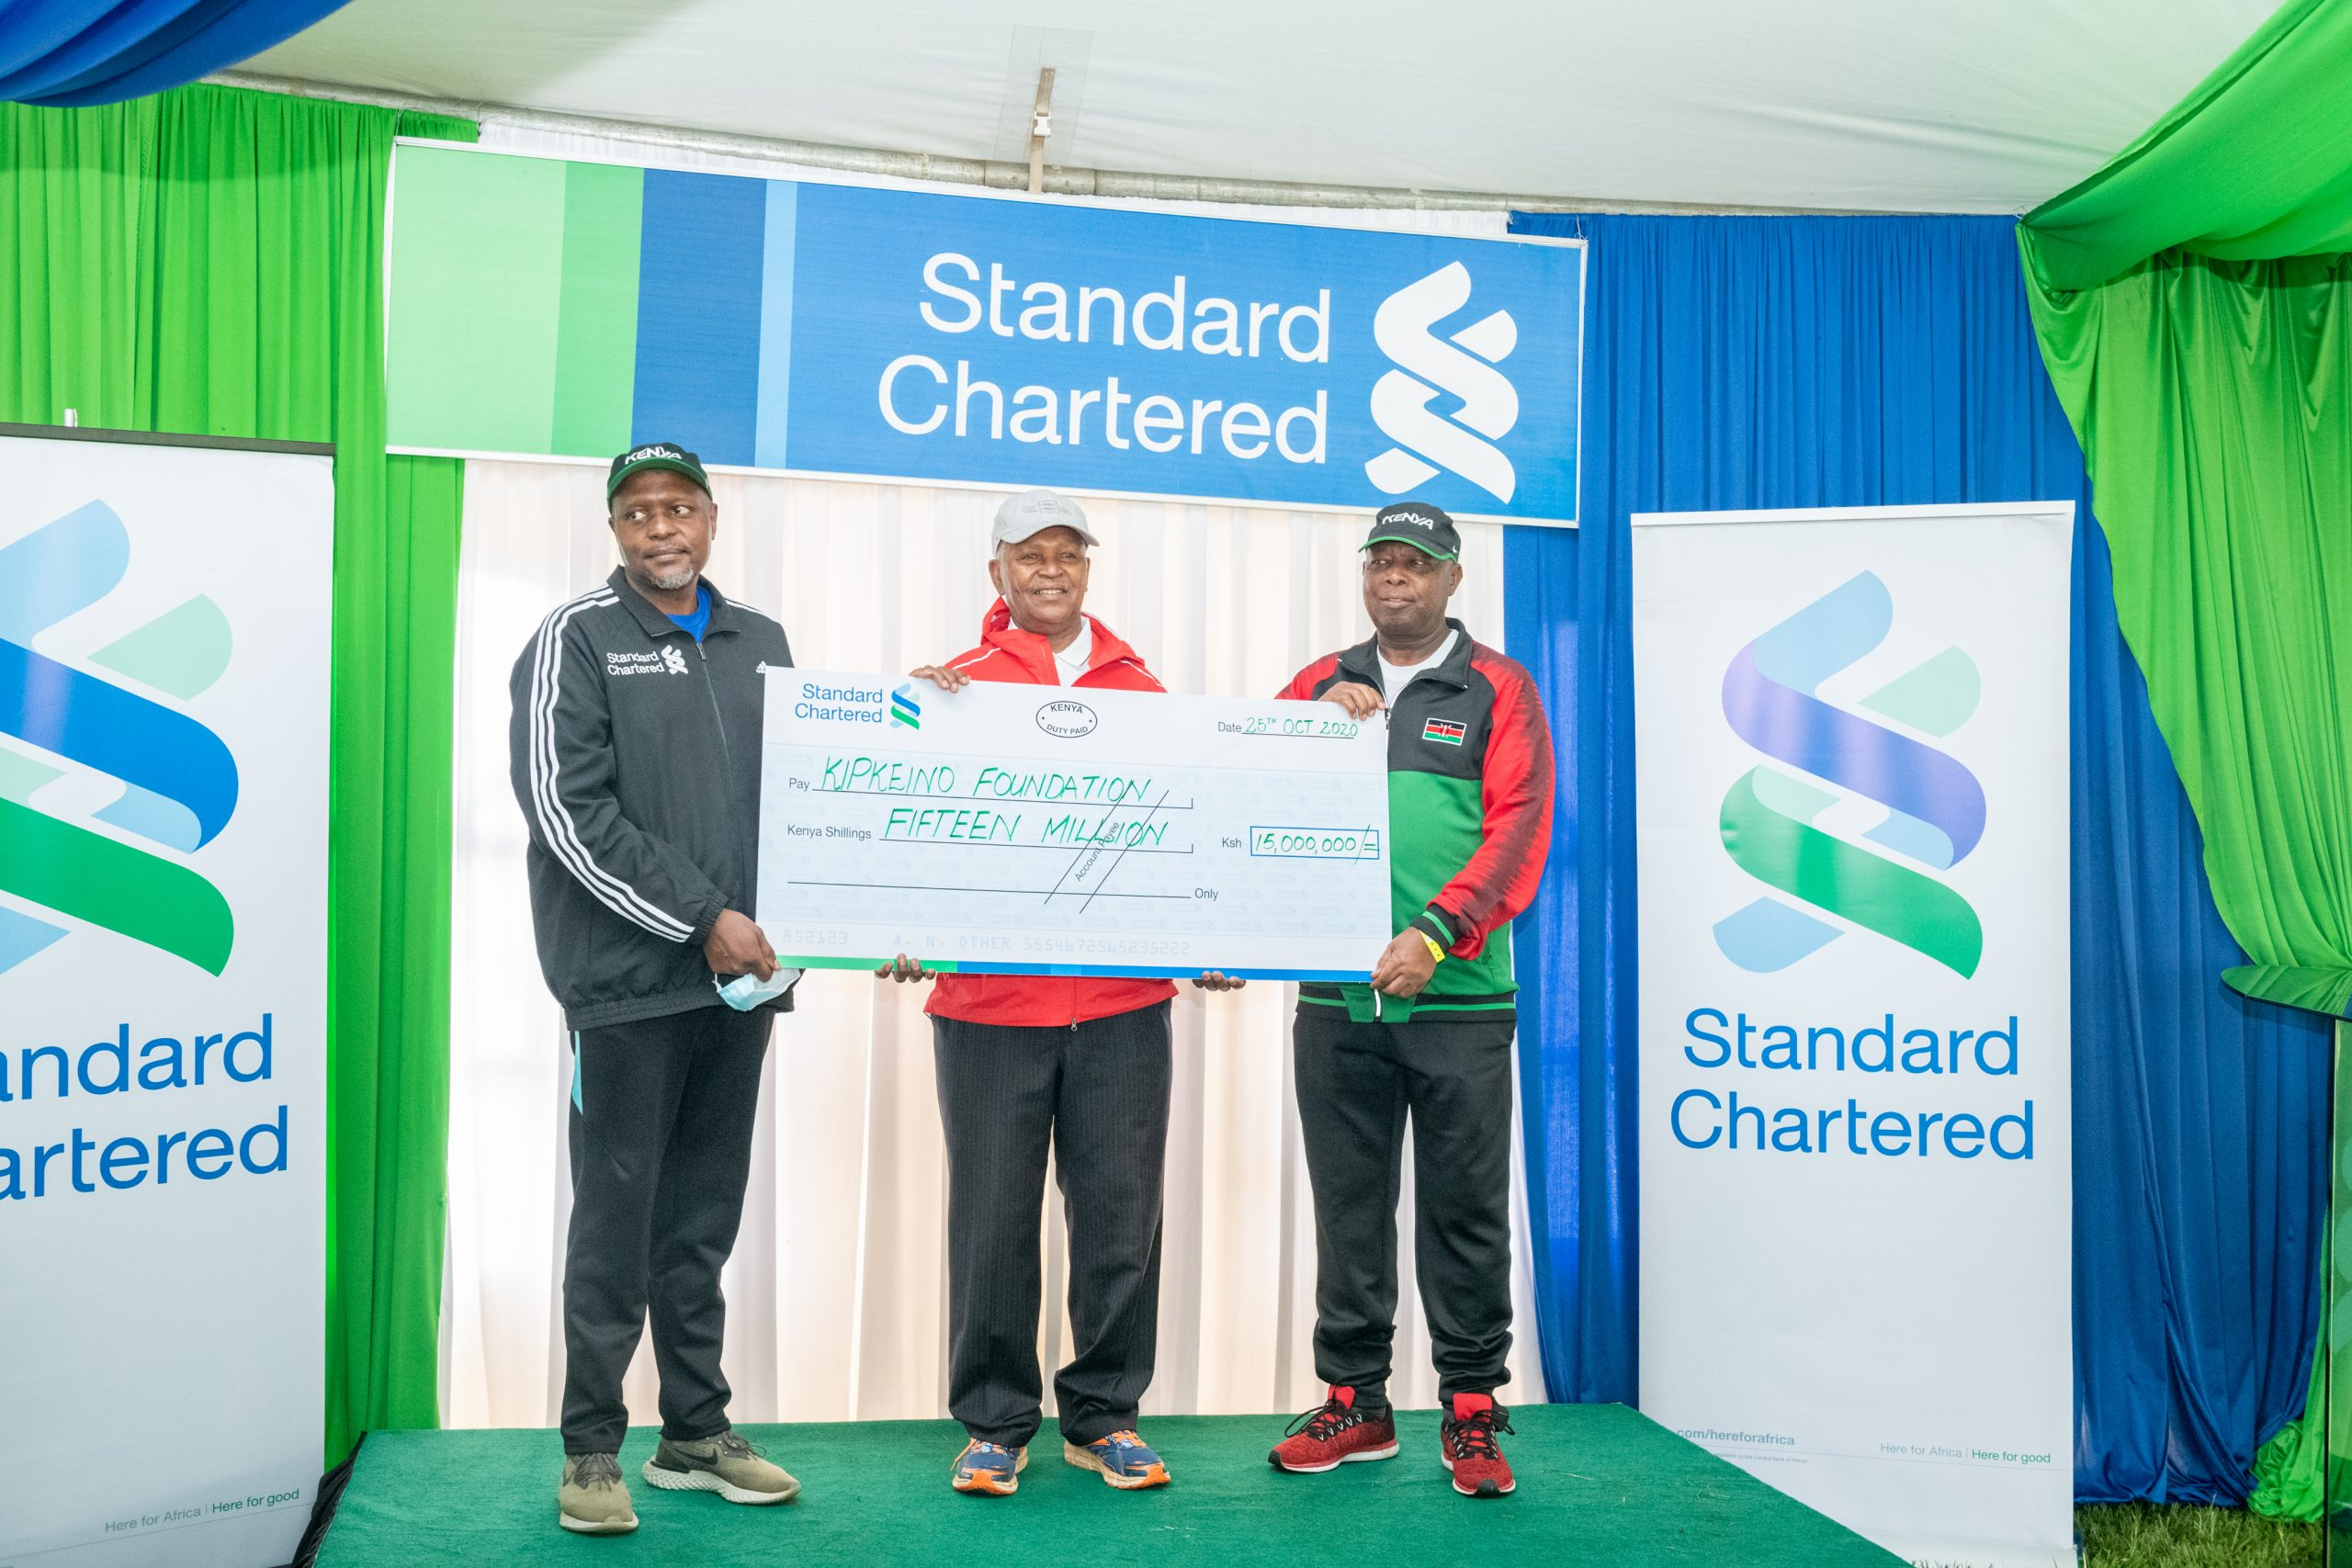 StanChart, Kipchoge Keino Foundation to support athletes against effects of COVID-19